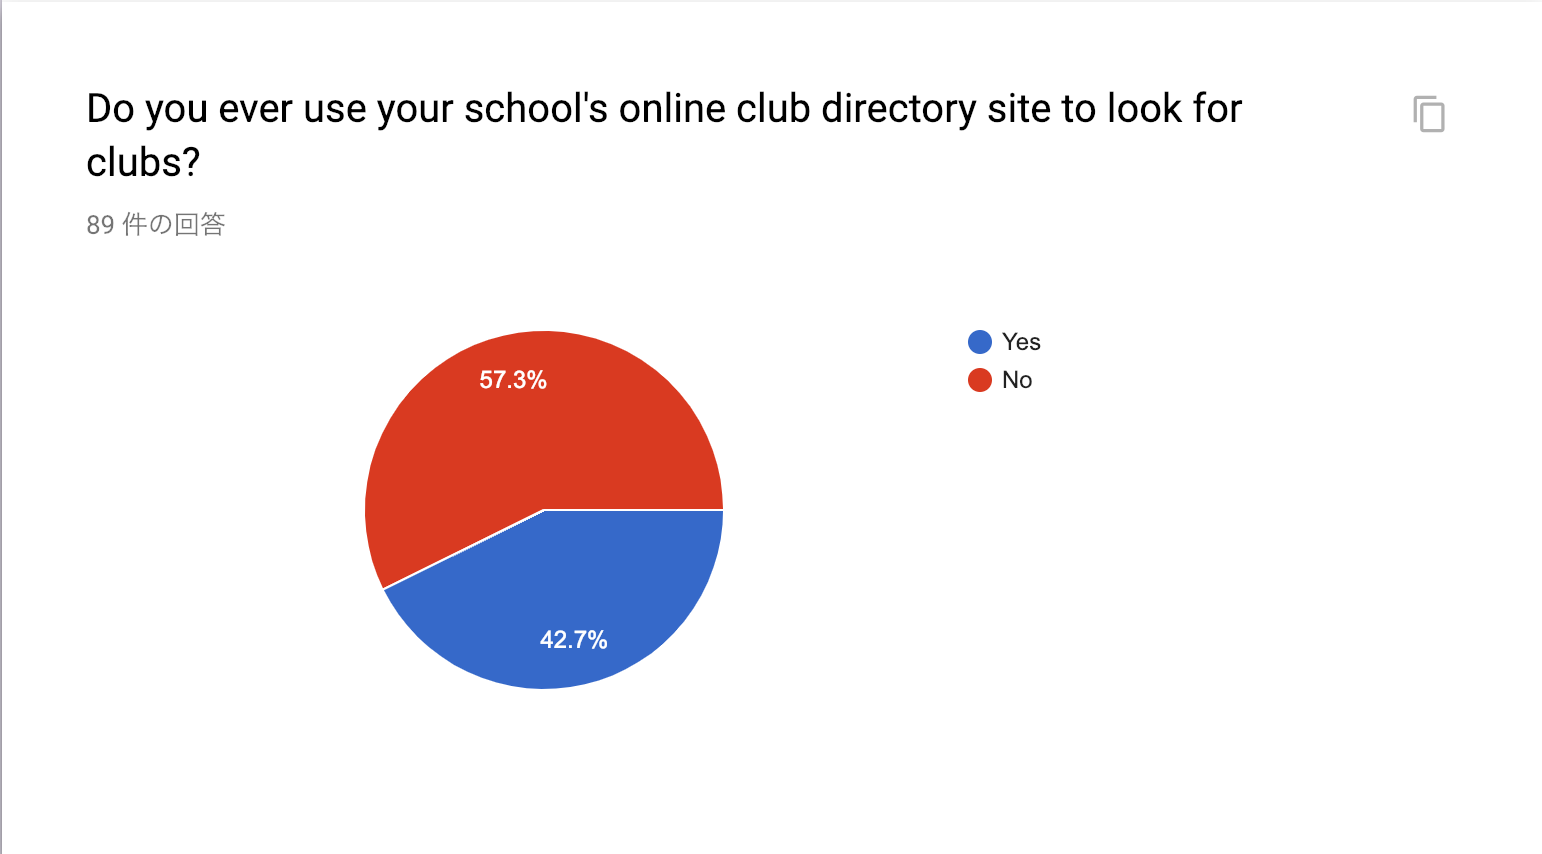 A good proportion of students have used the online RSO directory to look for RSOs to join